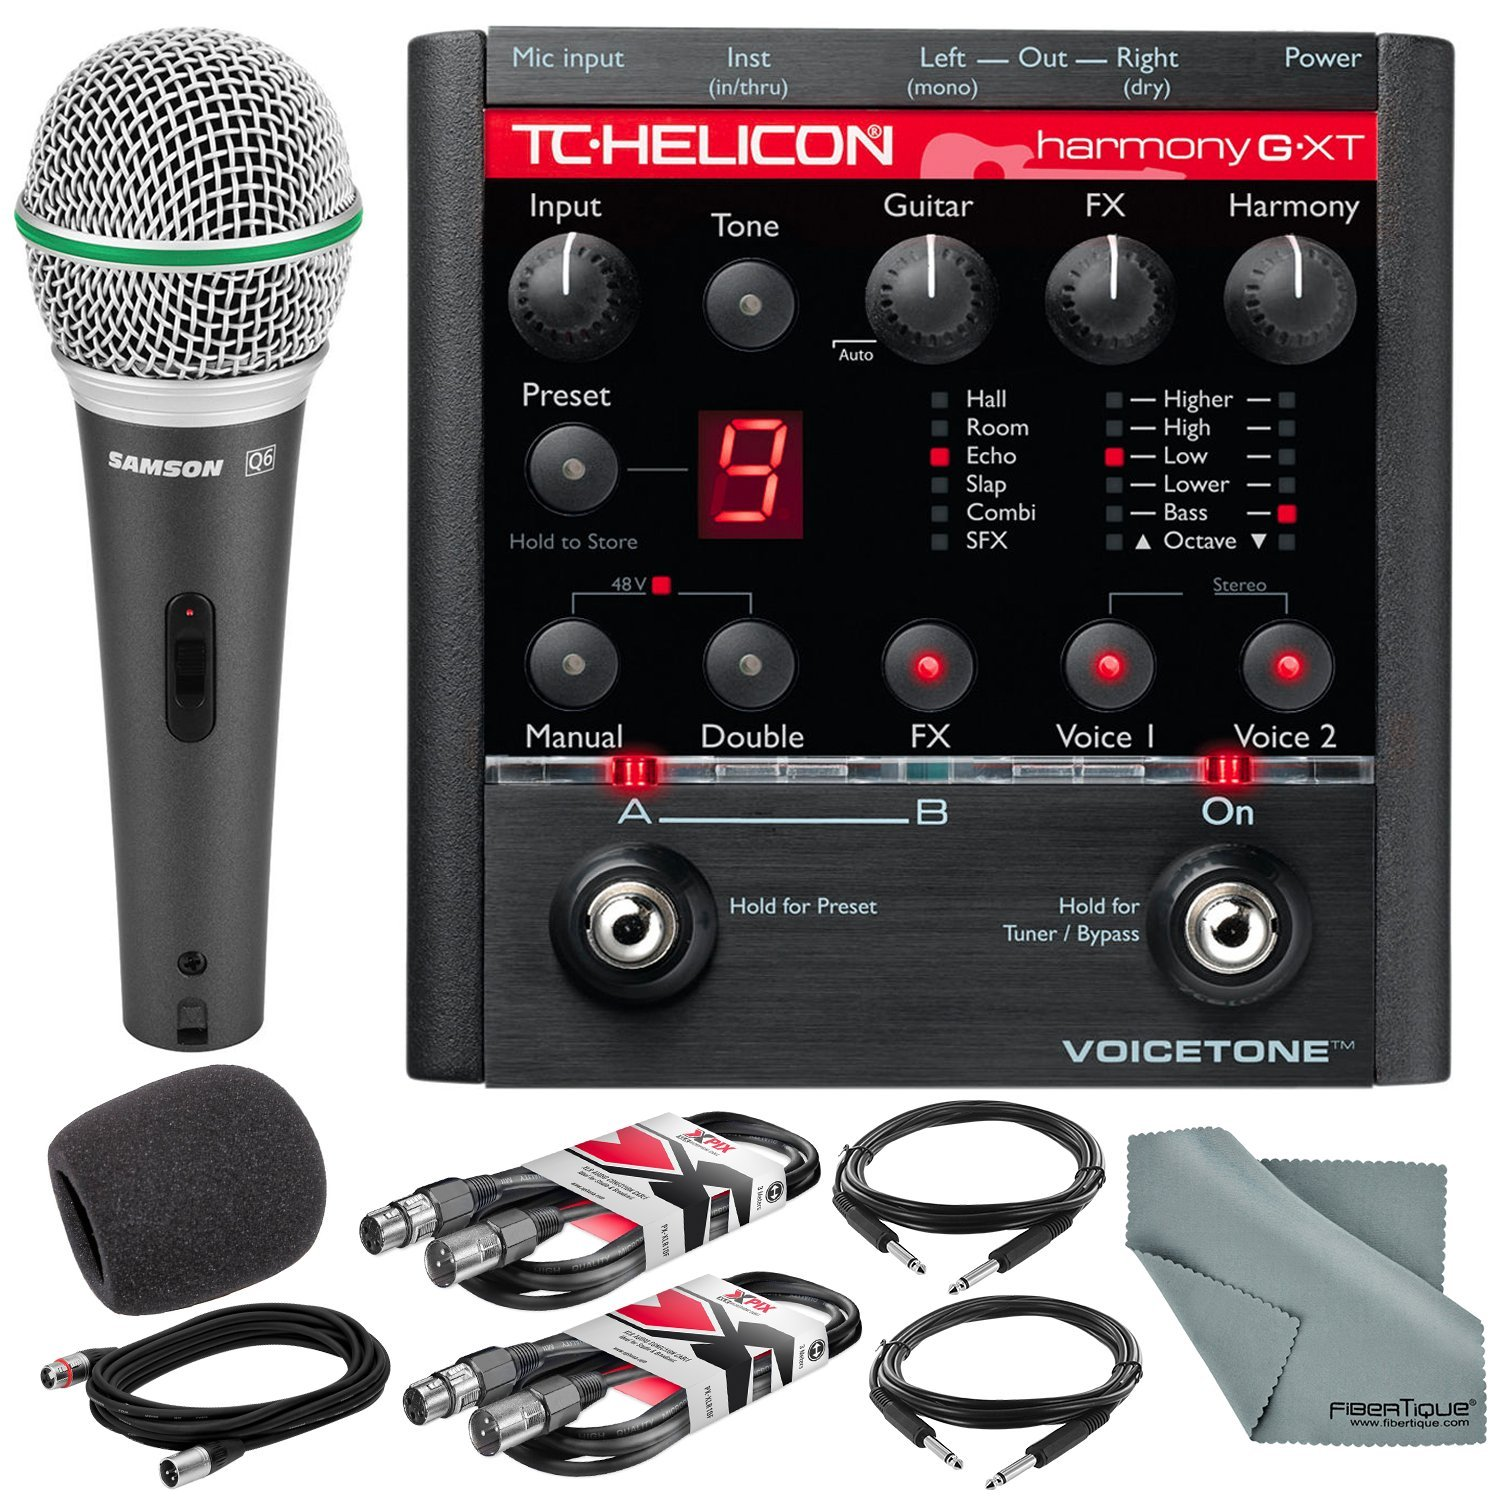 TC-Helicon VoiceTone Harmony-G XT Guitar & Vocal Harmony Pedal and Deluxe Accessory Bundle w/Samson Q6 Mic + Fibertique Cloth + 3X XLR Cable + 2X 1/4'' TRS Cable